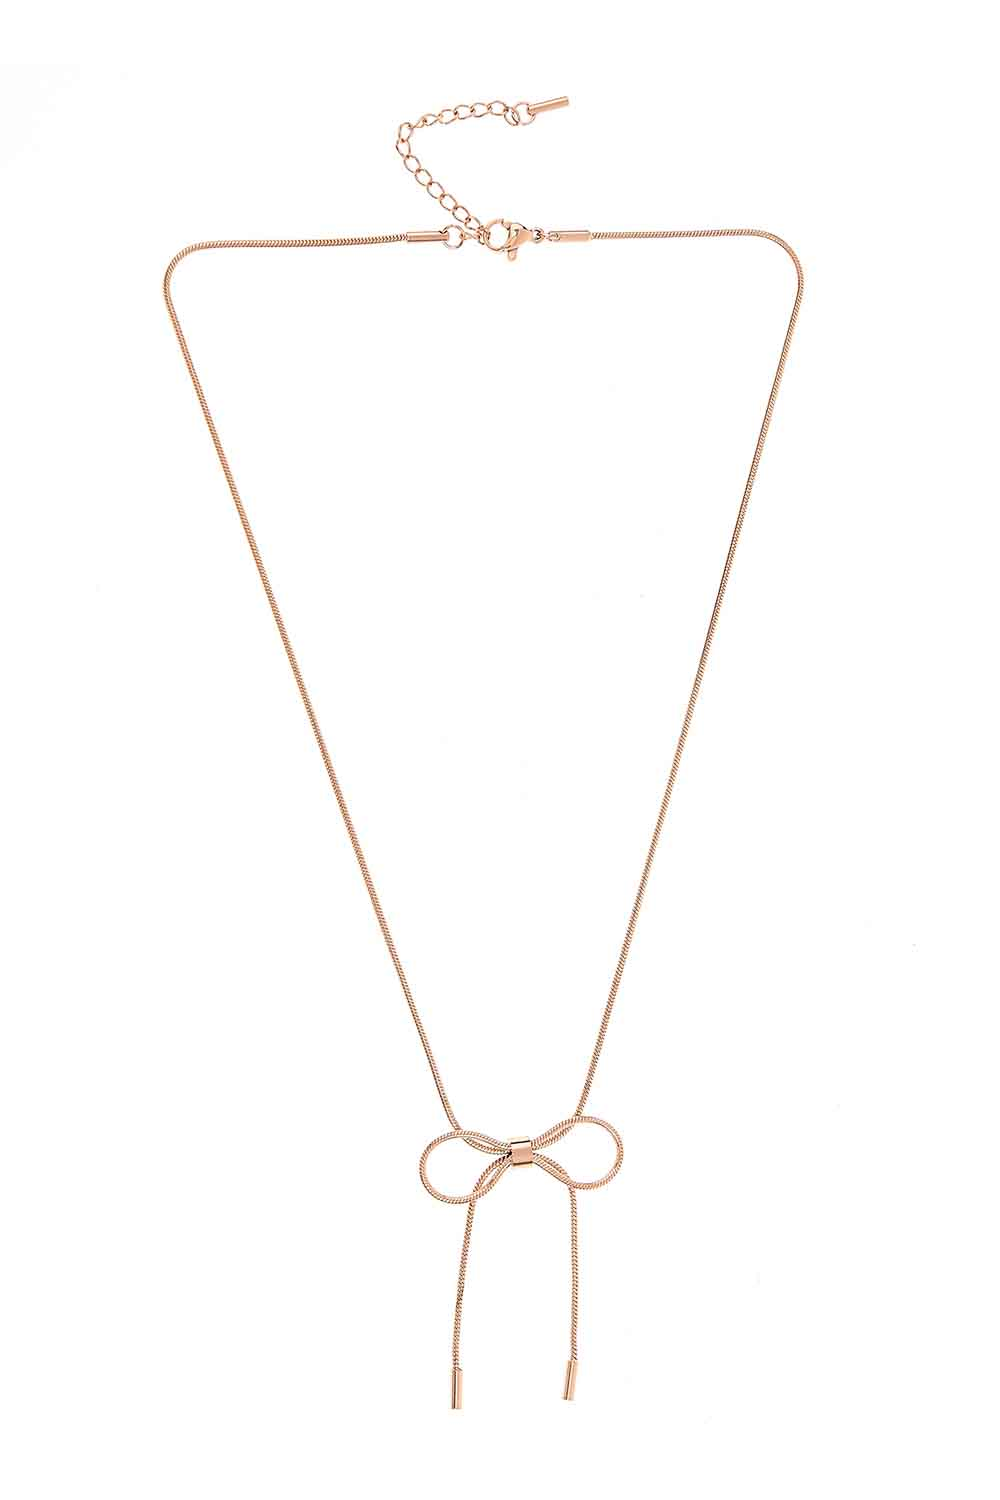 MIZALLE Bow Steel Necklace (St) (1)